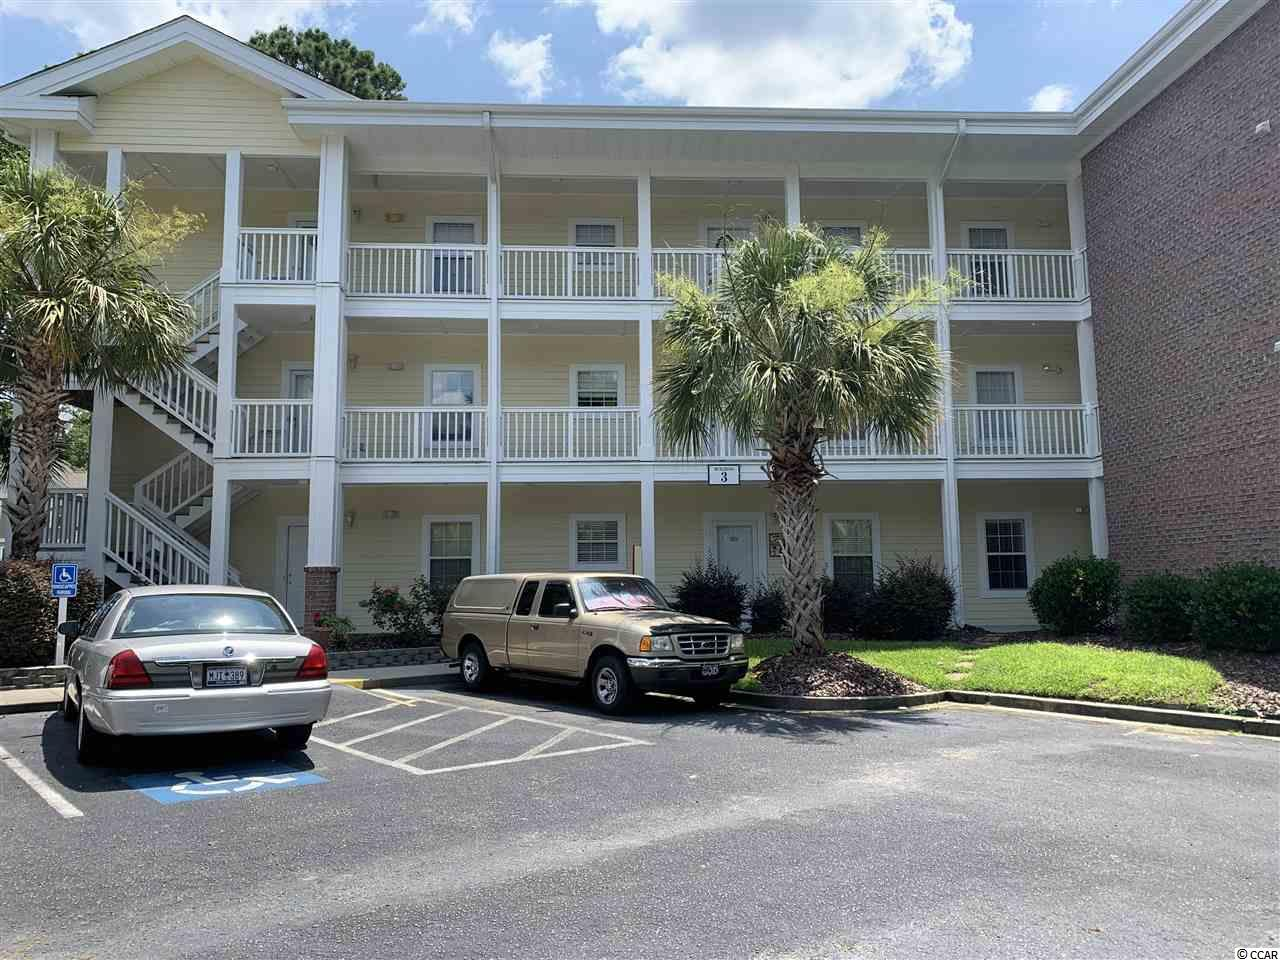 Owner offering 1 Year Home Warranty! This 2BR - 2BA furnished end unit is located on the ground floor in sought after Gardens at Cypress Bay, Little River. This spacious and bright condo offers crown molding and chair rail. Living room and master bedroom open to a private screened porch where you can sit and relax while looking out onto a courtyard and pool. The community has three pools on the property and grills available for use. Located just minutes to Little River waterfront and the beaches of Cherry Grove and North Myrtle Beach. If you love the ocean, you'll love this area with beaches, fishing and marinas close by. For the golfers out there, you are surrounded by lush green golf courses for all levels to enjoy. With shops, restaurants and entertainment so close, there is something for everyone. This condo would make a great investment property, wonderful vacation home or primary residence. Make an Offer!